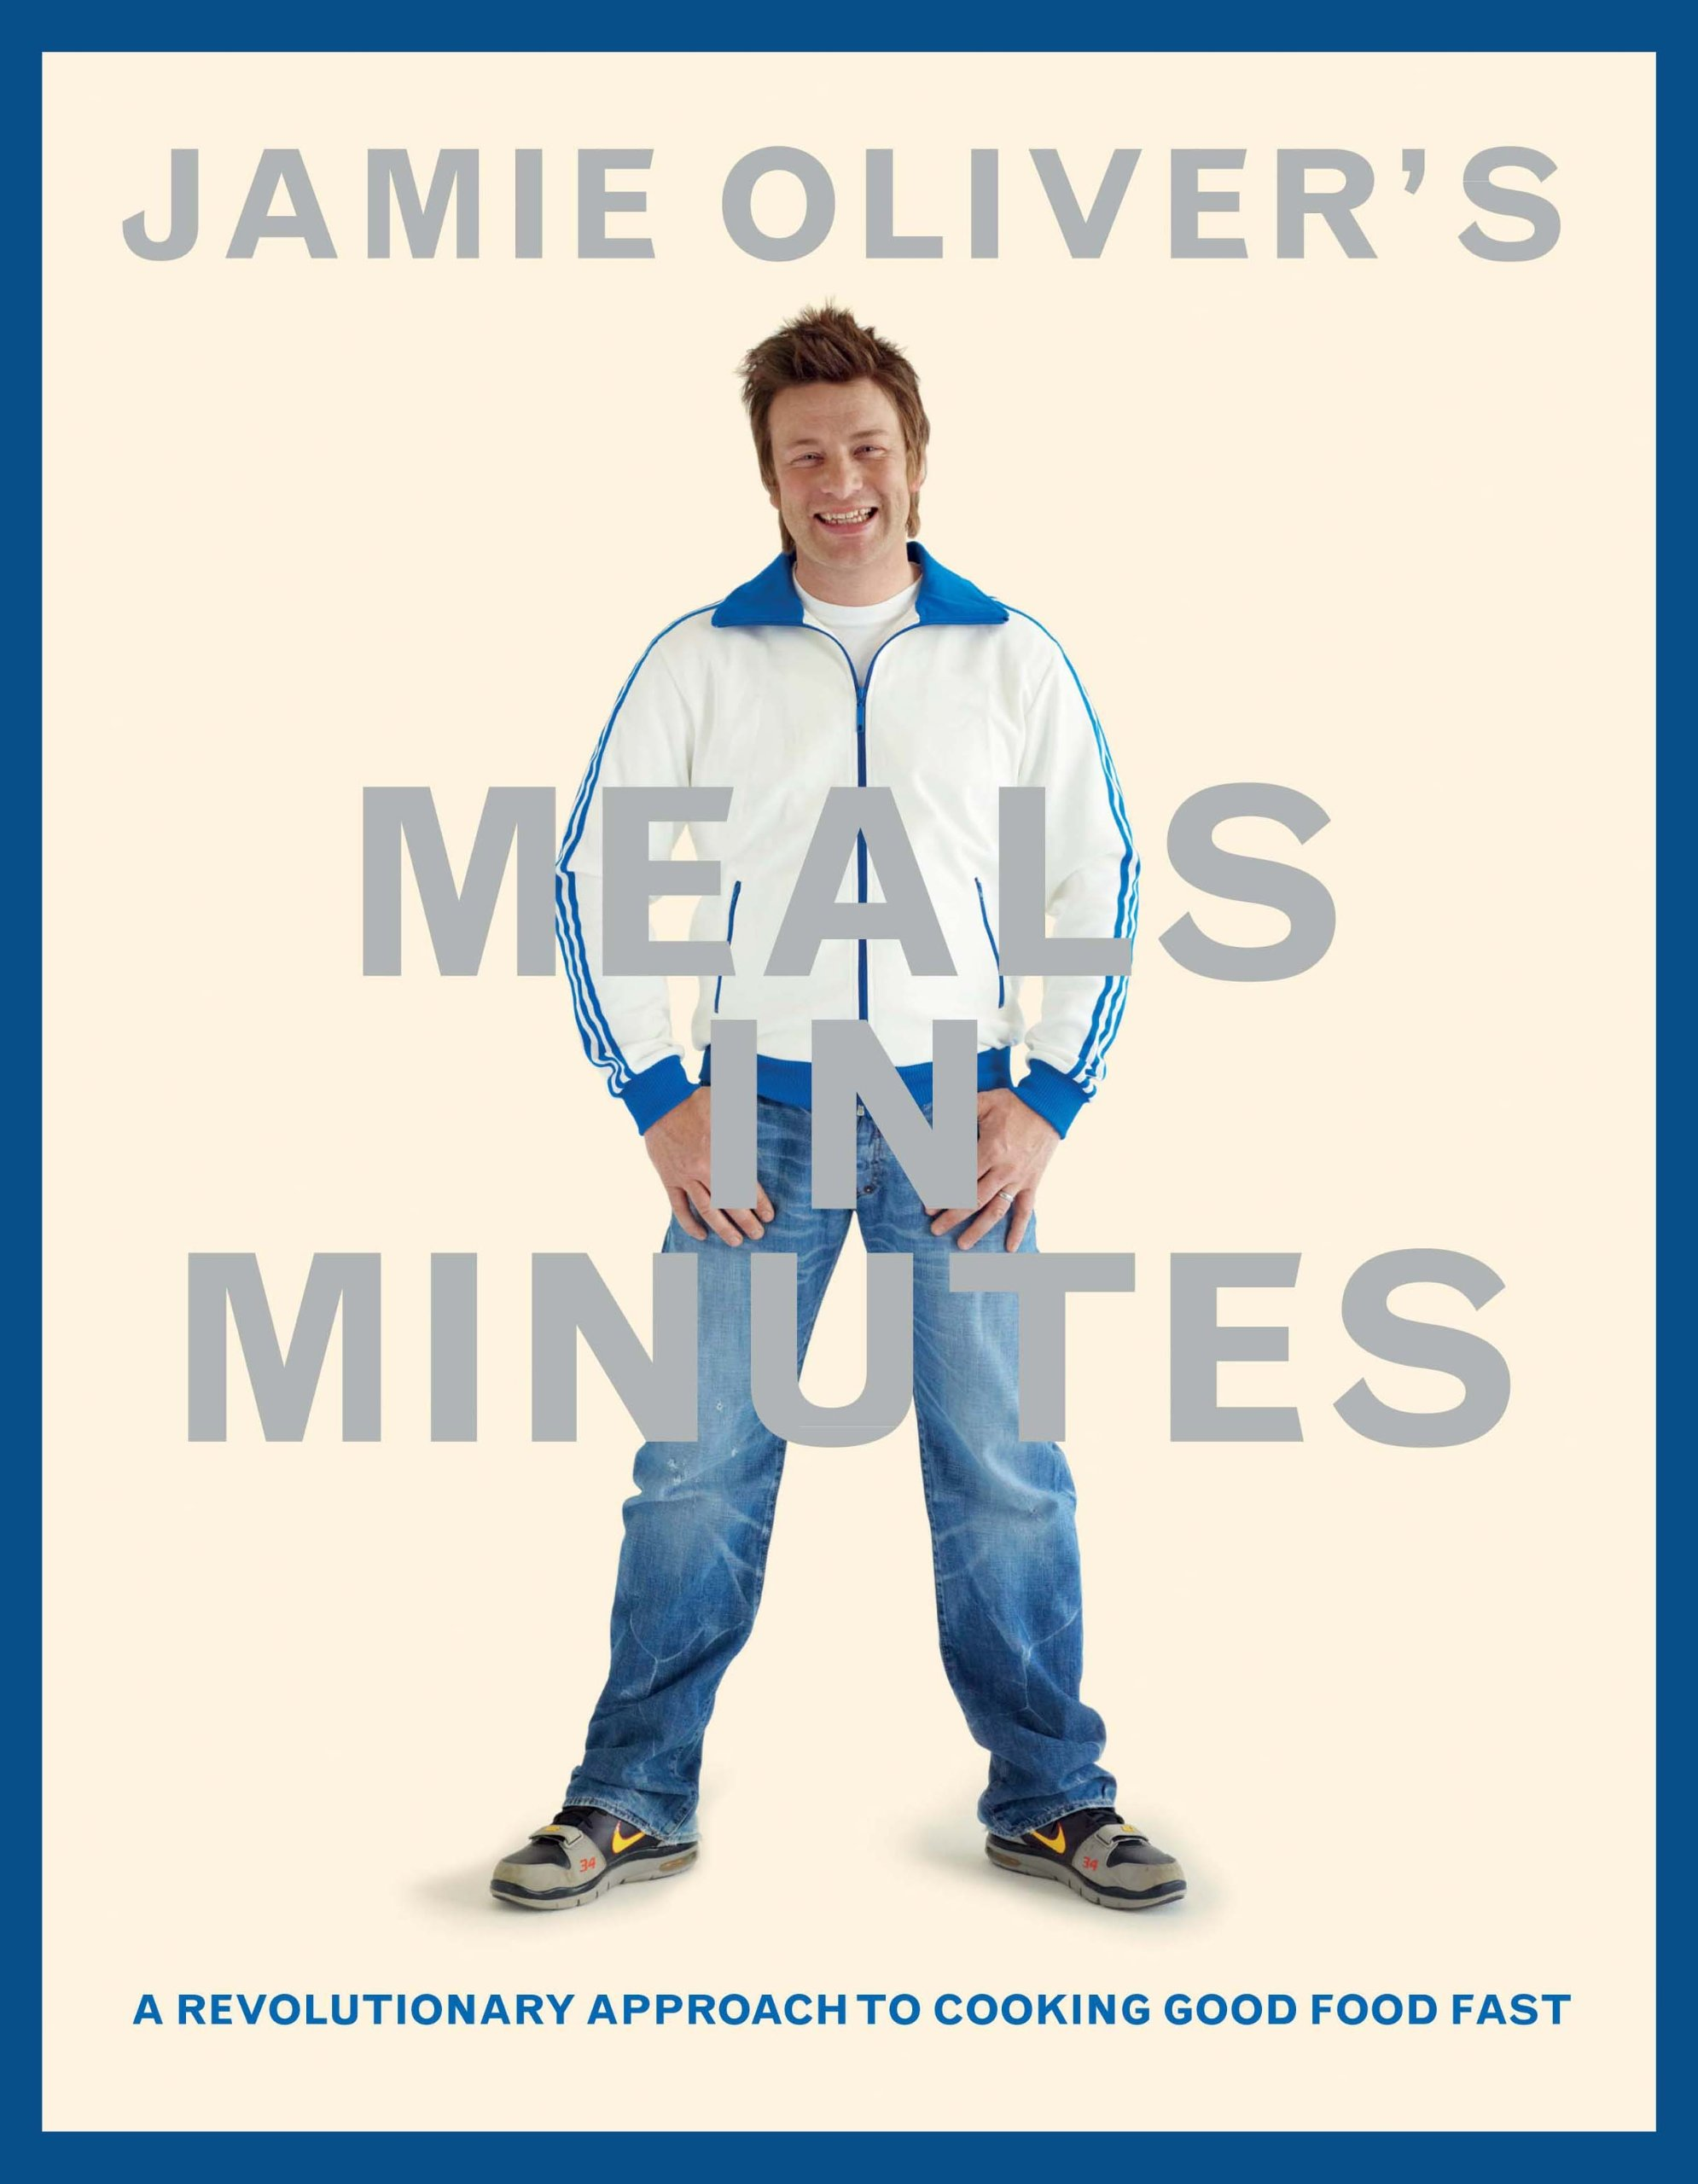 Jamie olivers meals in minutes a revolutionary approach to cooking jamie olivers meals in minutes a revolutionary approach to cooking good food fast jamie oliver 9781401324421 amazon books forumfinder Images